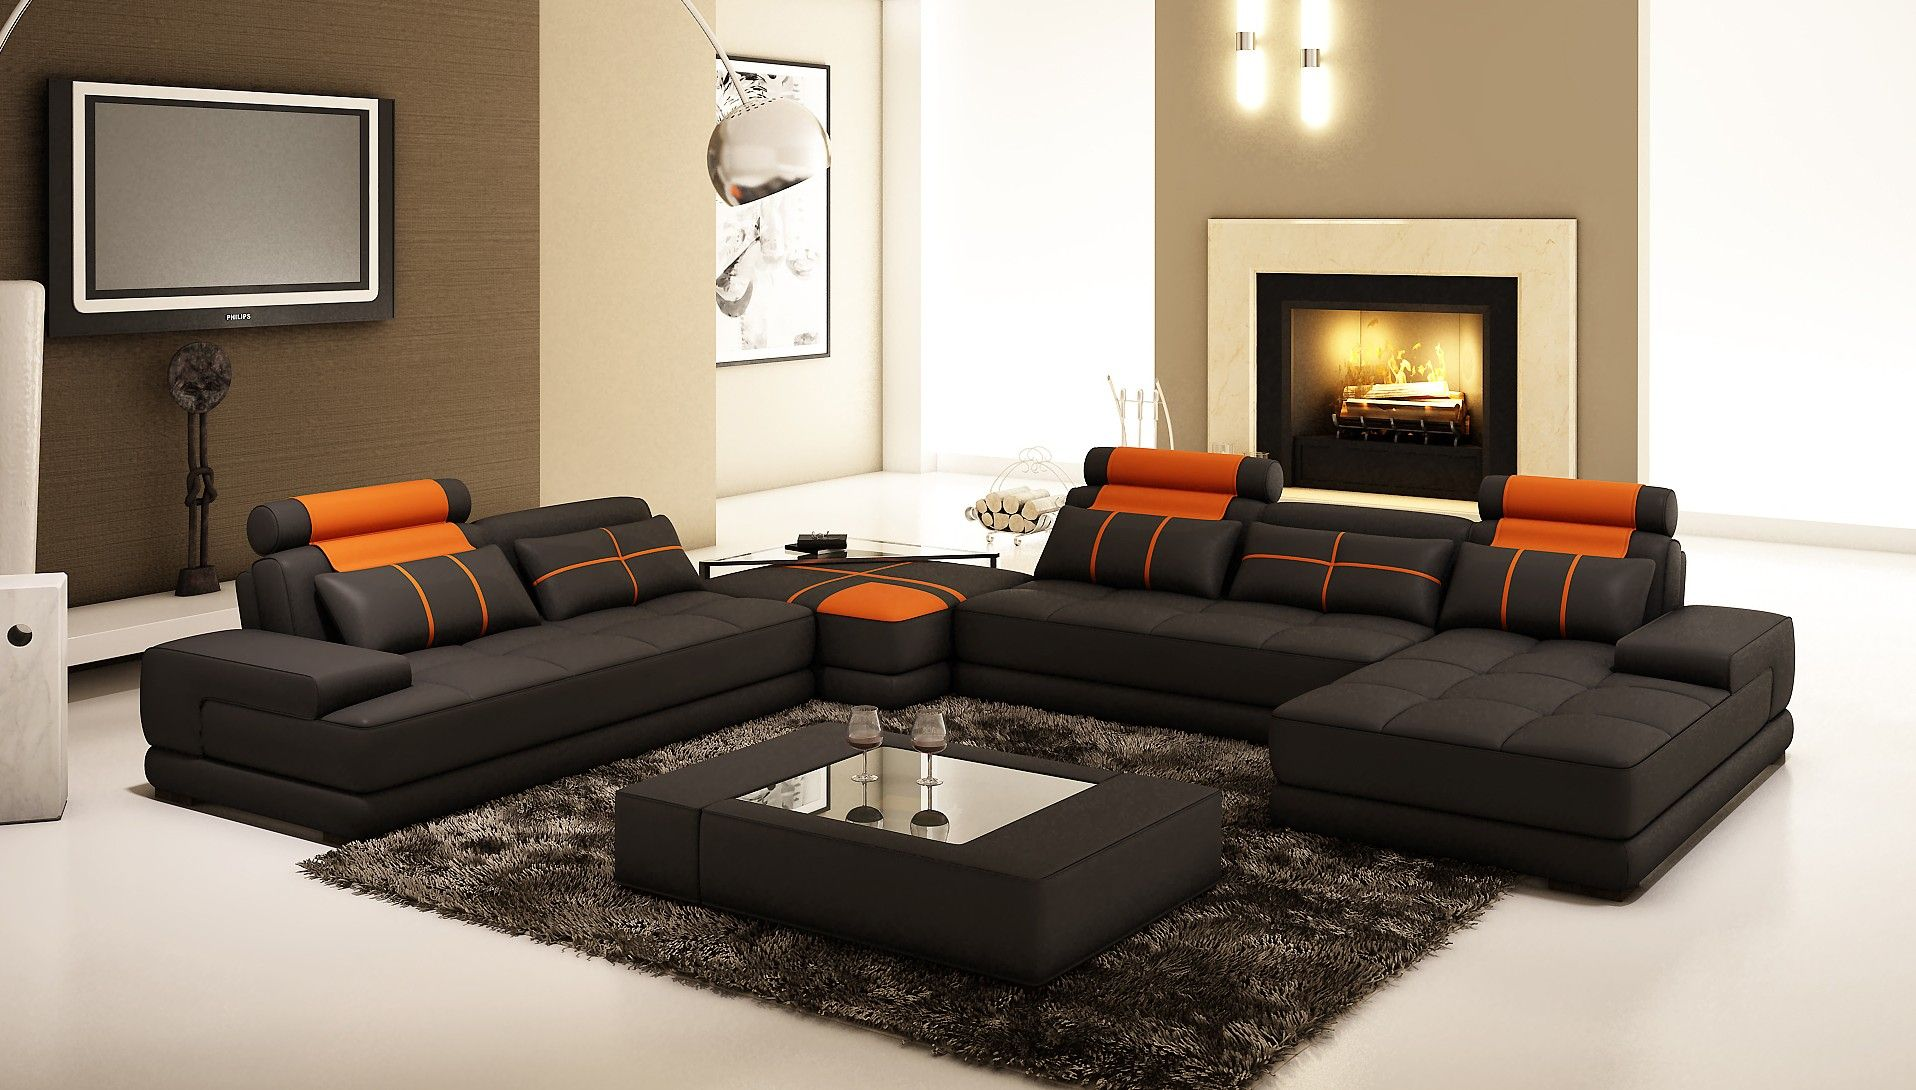 Living Room Design With Black Leather Sofa Fascinating Ev5004  Диваны   Pinterest  Orange Leather Sofas Design Decoration